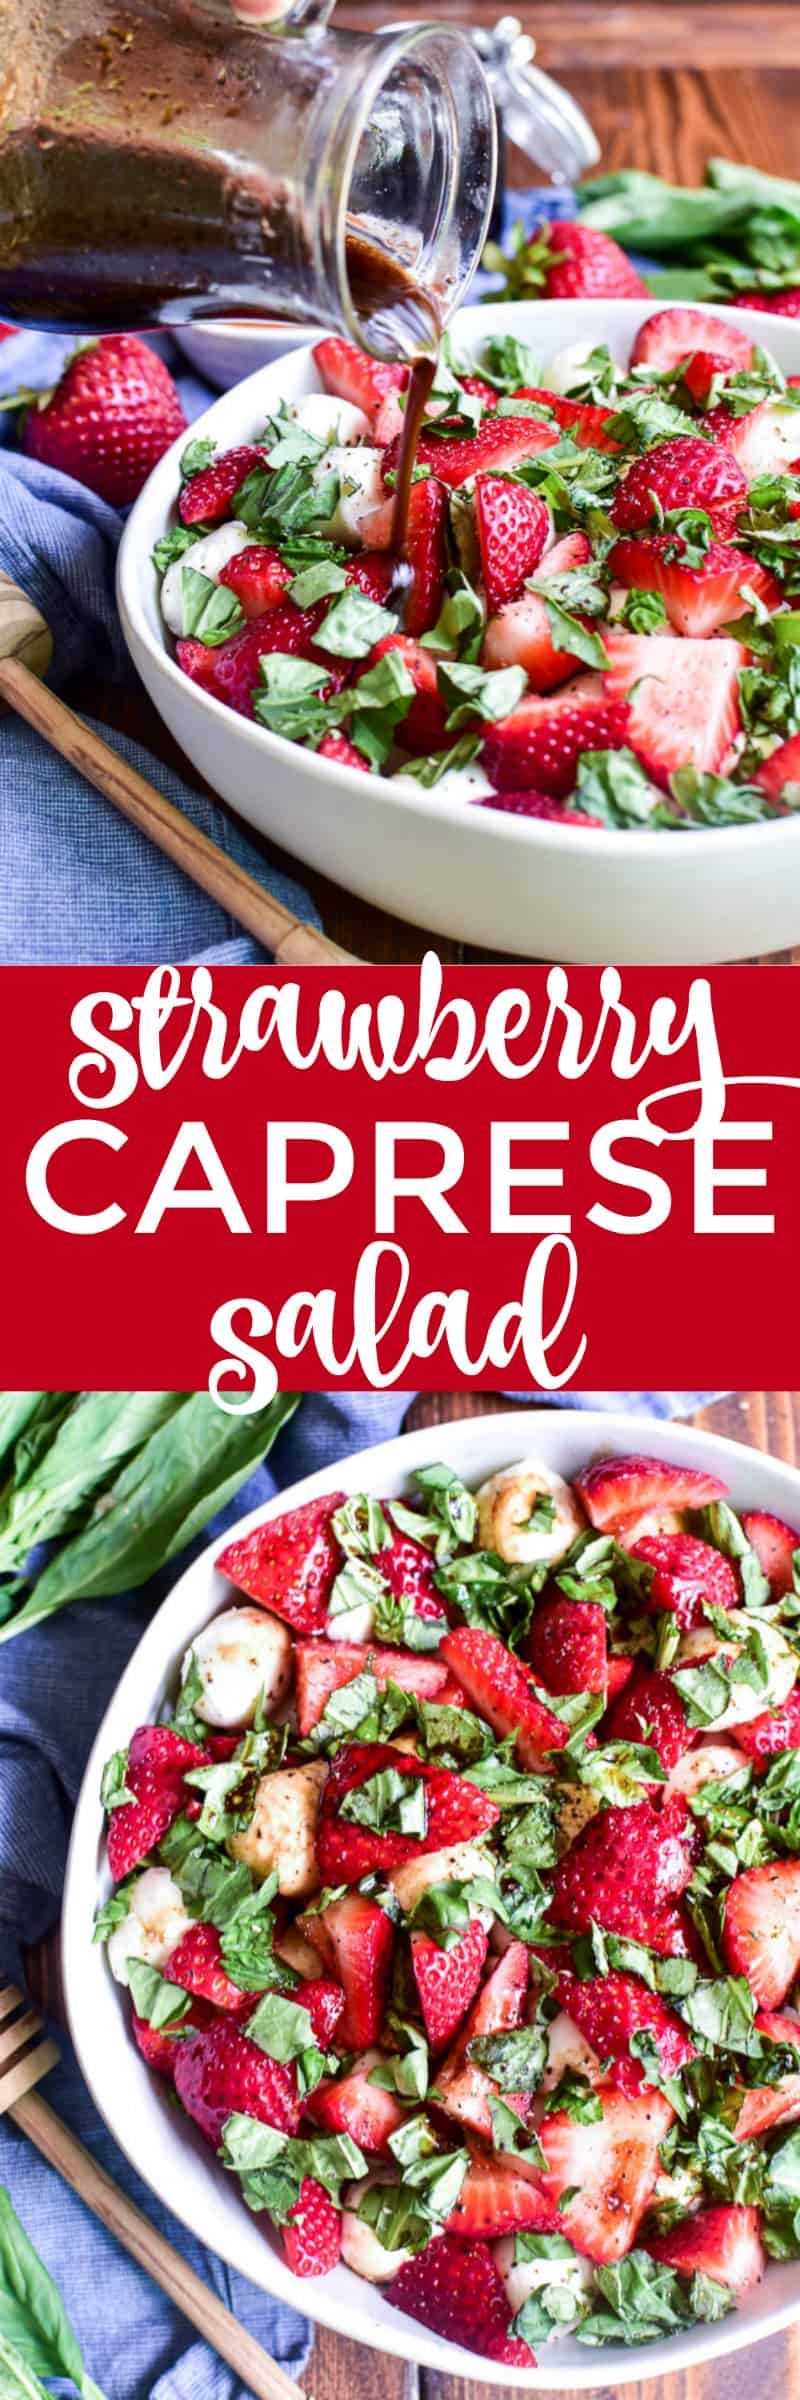 Collage image of Strawberry Caprese Salad